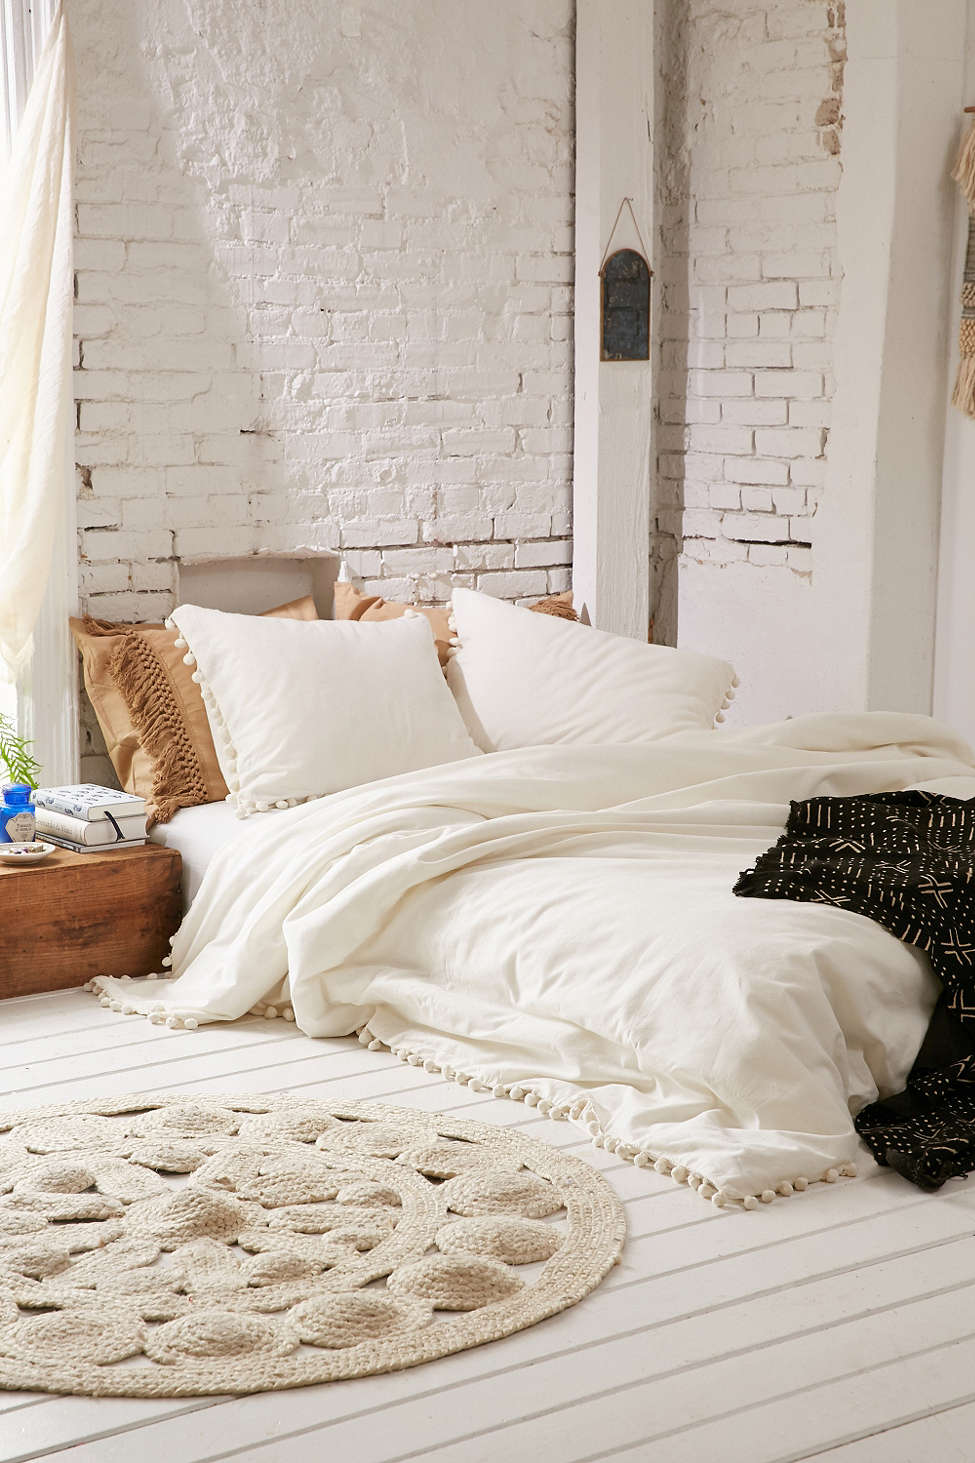 How Often Do You Update Your Bedding? (By the way, totally obsessed with this bohemian pom pom fringe bedroom set.) | glitterinc.com | @glitterinc